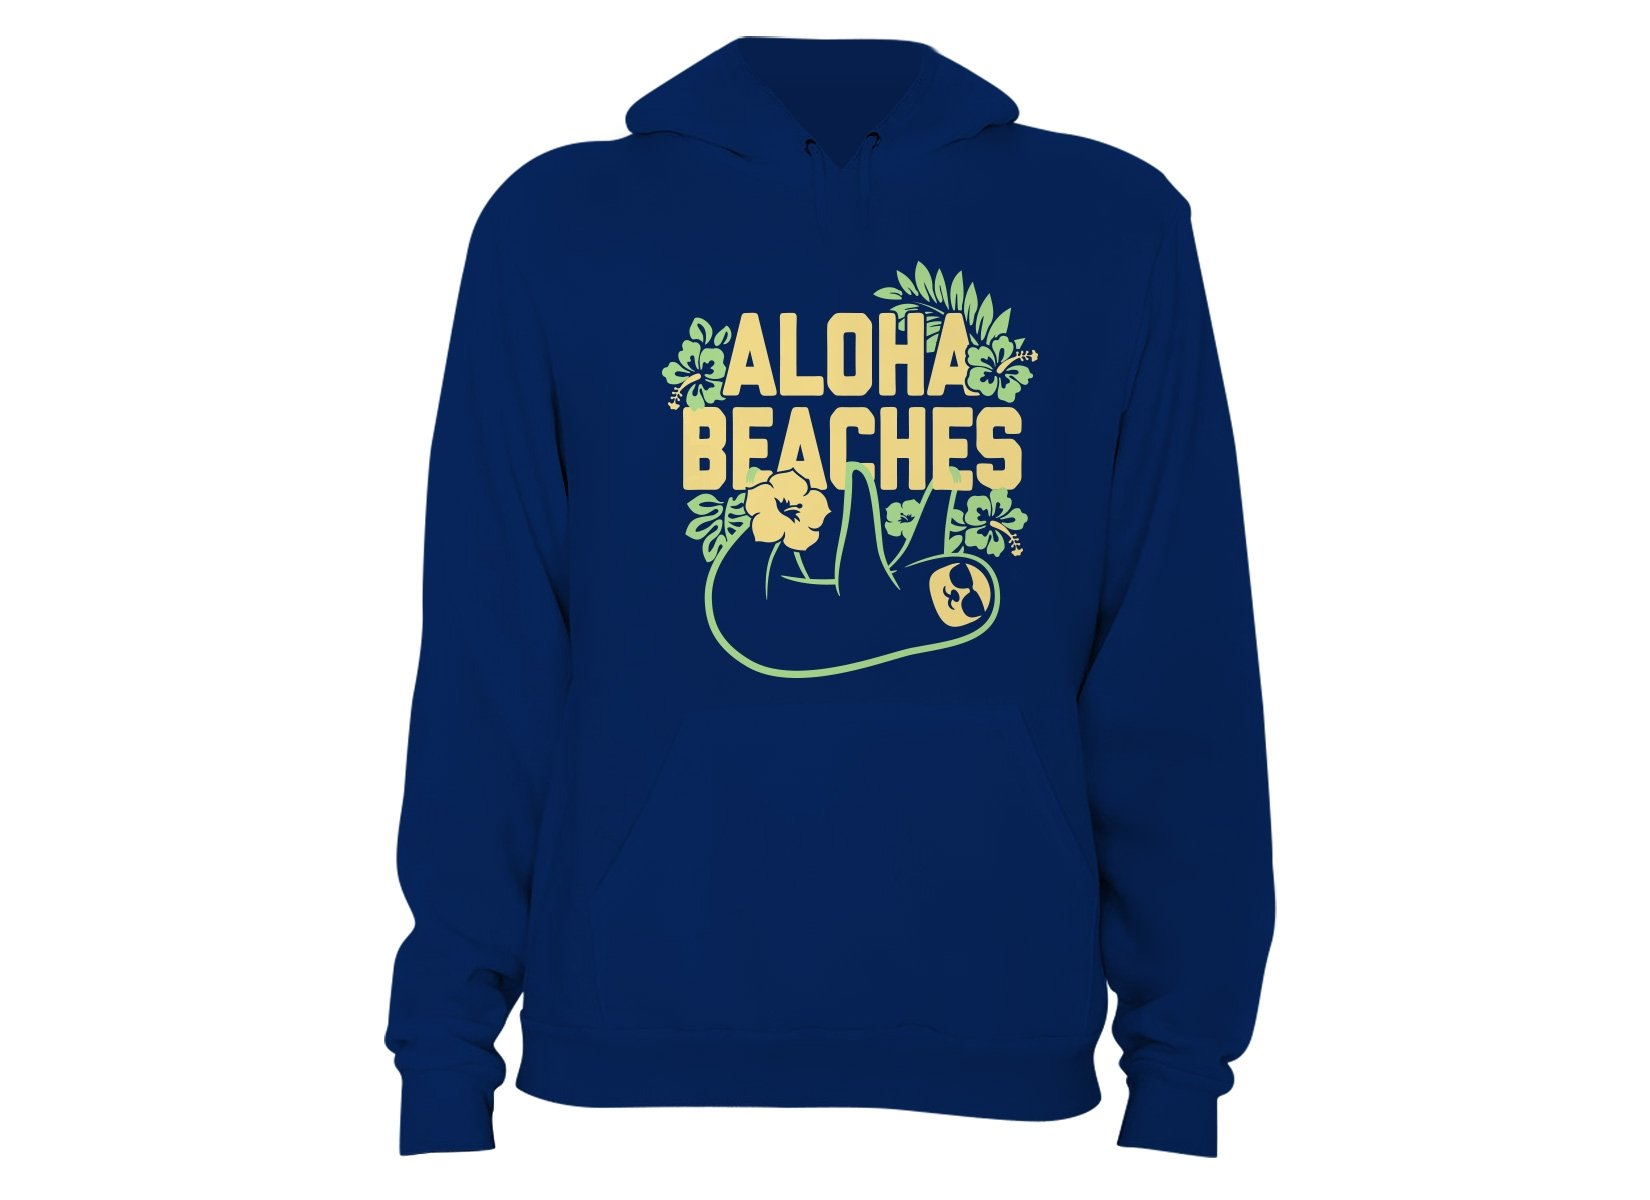 Aloha Beaches on Hoodie